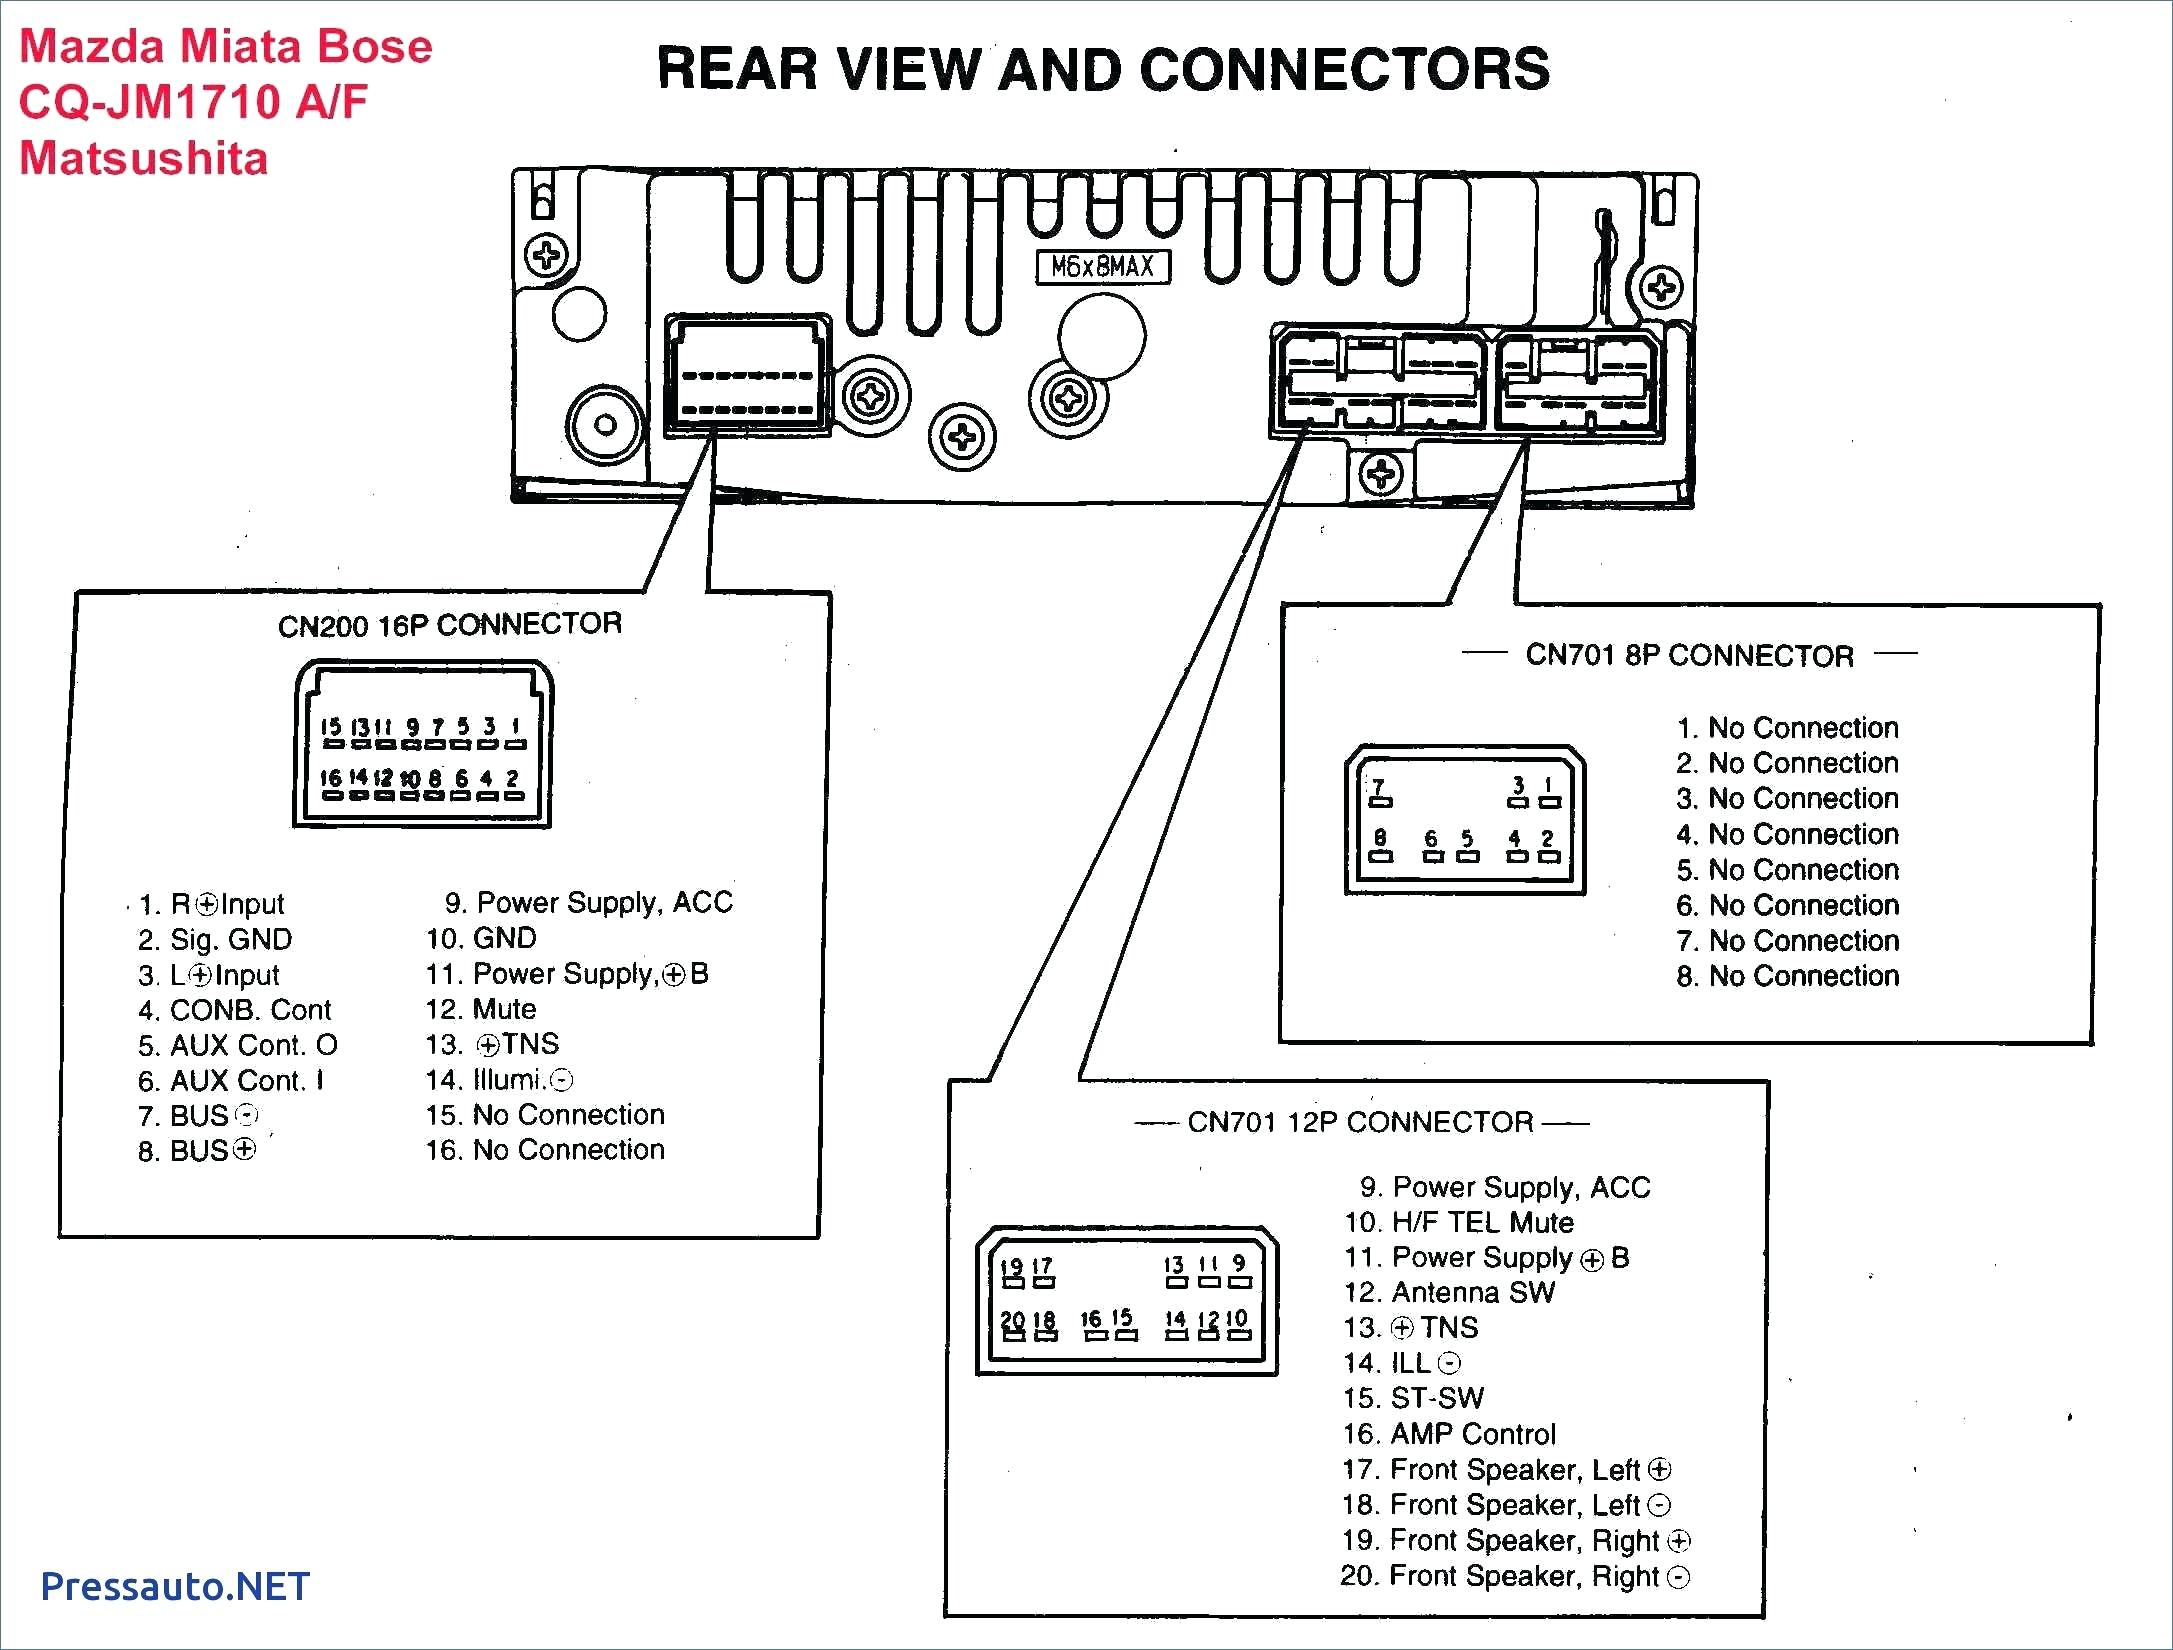 [SCHEMATICS_48ZD]  DIAGRAM] 2005 Lexus Es330 Radio Wiring Diagram Collection Wiring Diagram  FULL Version HD Quality Wiring Diagram - ISSCHEMATIC.BISTROTDESCAPUCINS.FR | 2004 Lexus Es330 Radio Wiring Diagram |  | isschematic.bistrotdescapucins.fr